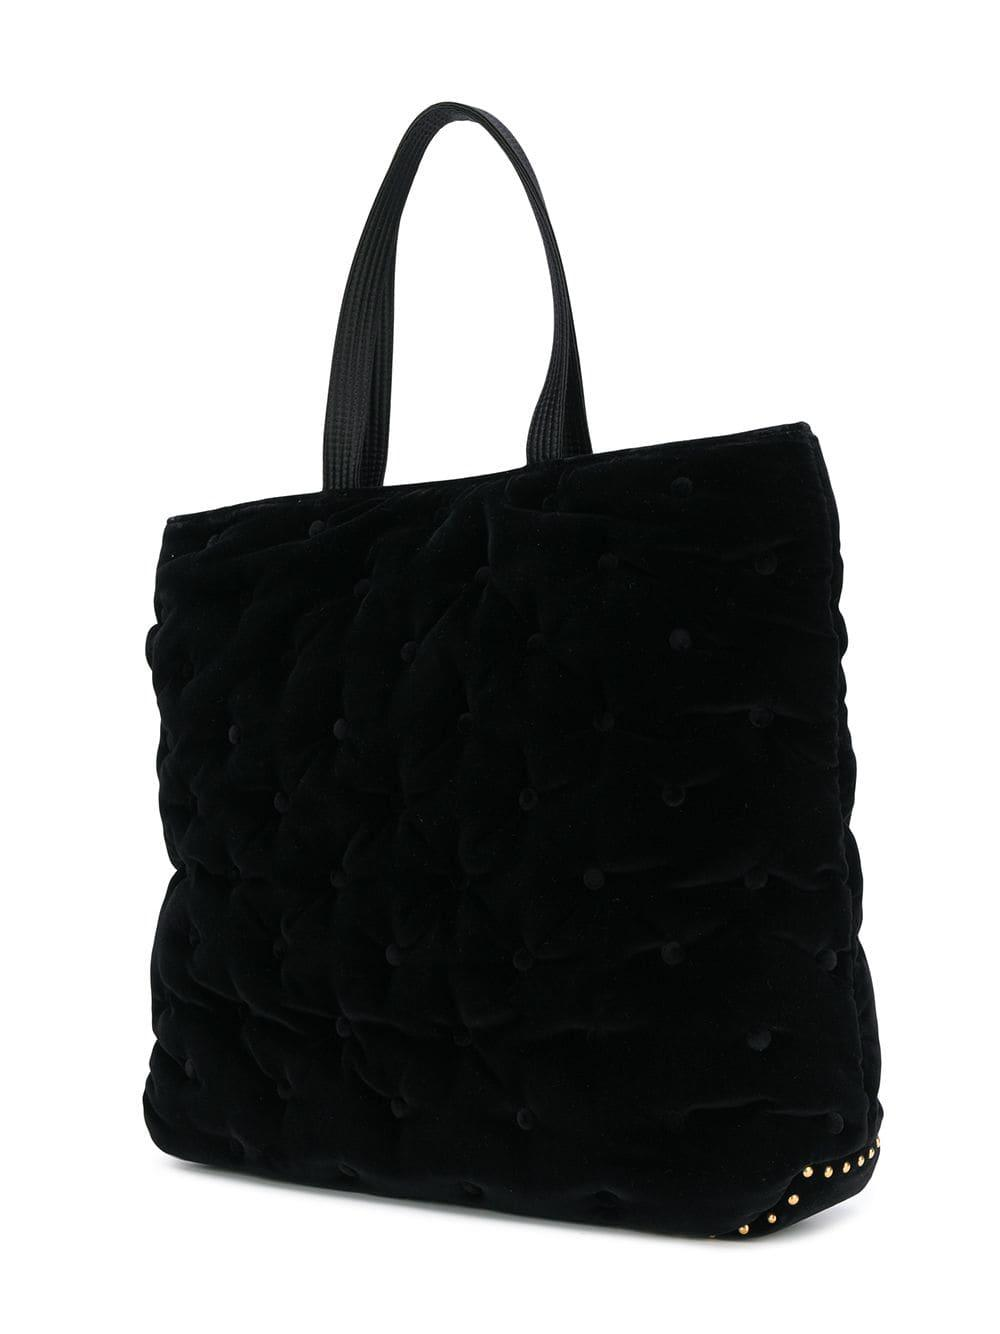 6c889cf493f6 Lyst - Versace Quilted Medusa Tote Bag in Black for Men